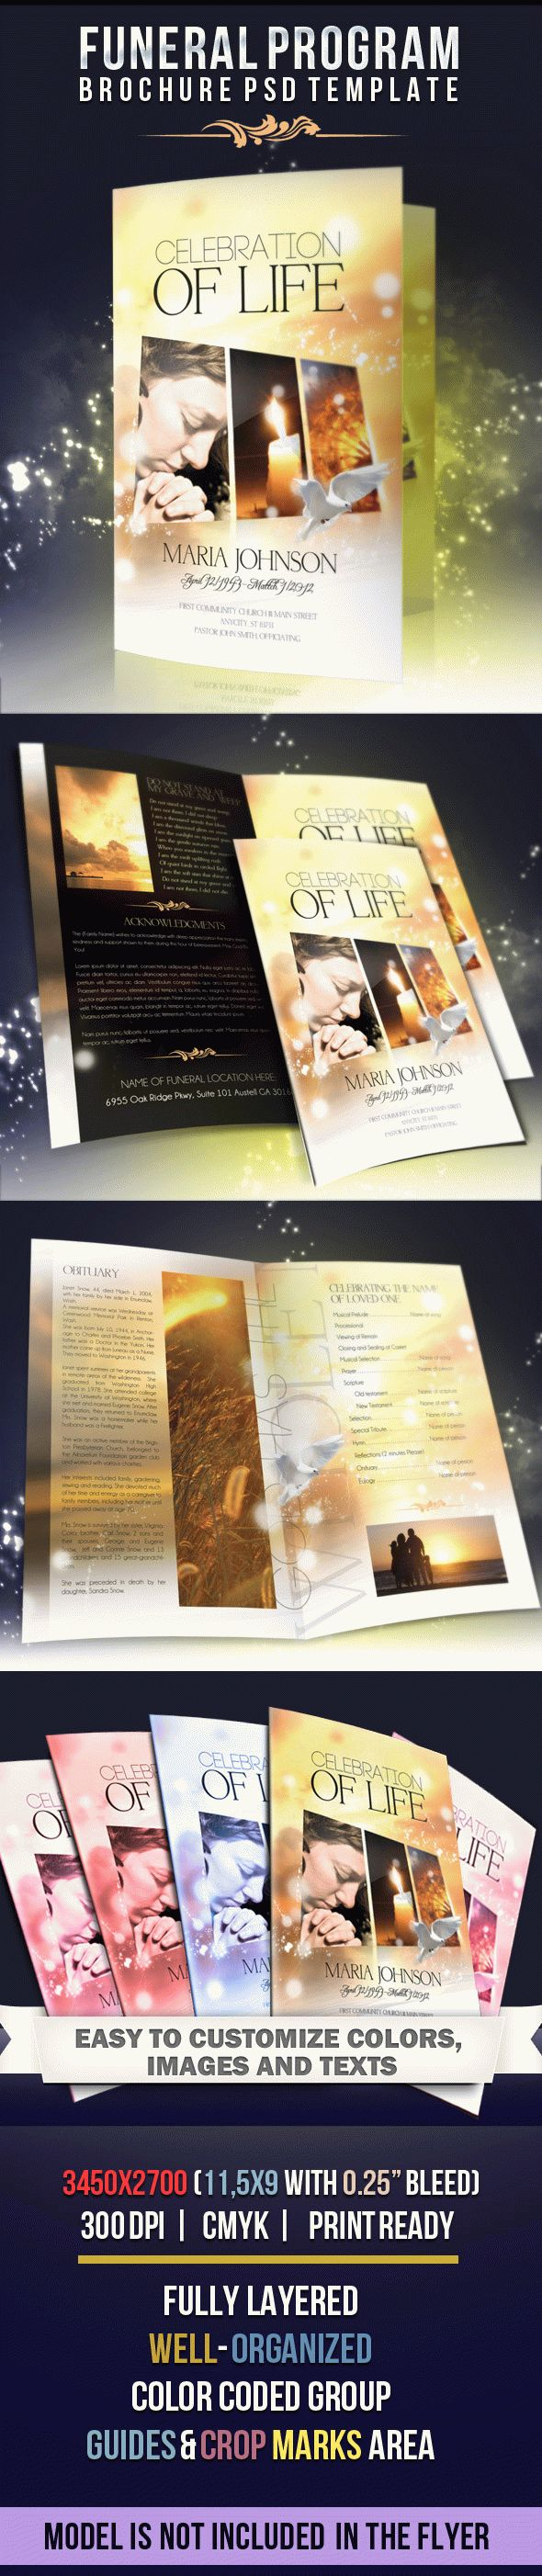 Celebration of life free funeral program brochure in psd for Program brochure templates